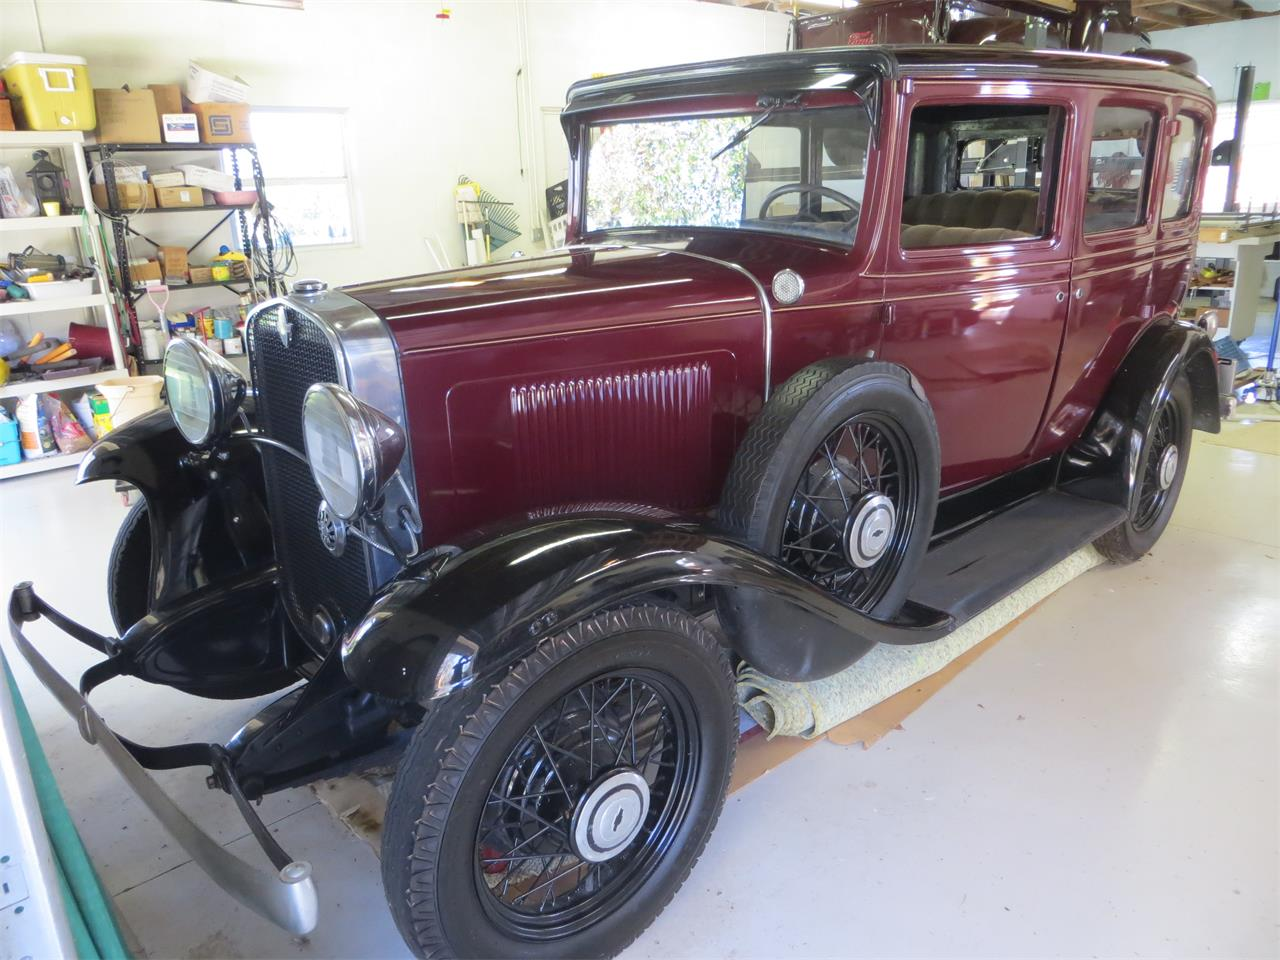 Large Picture of 1931 Chevrolet Independence located in Lake Placid Florida Offered by a Private Seller - KKT4